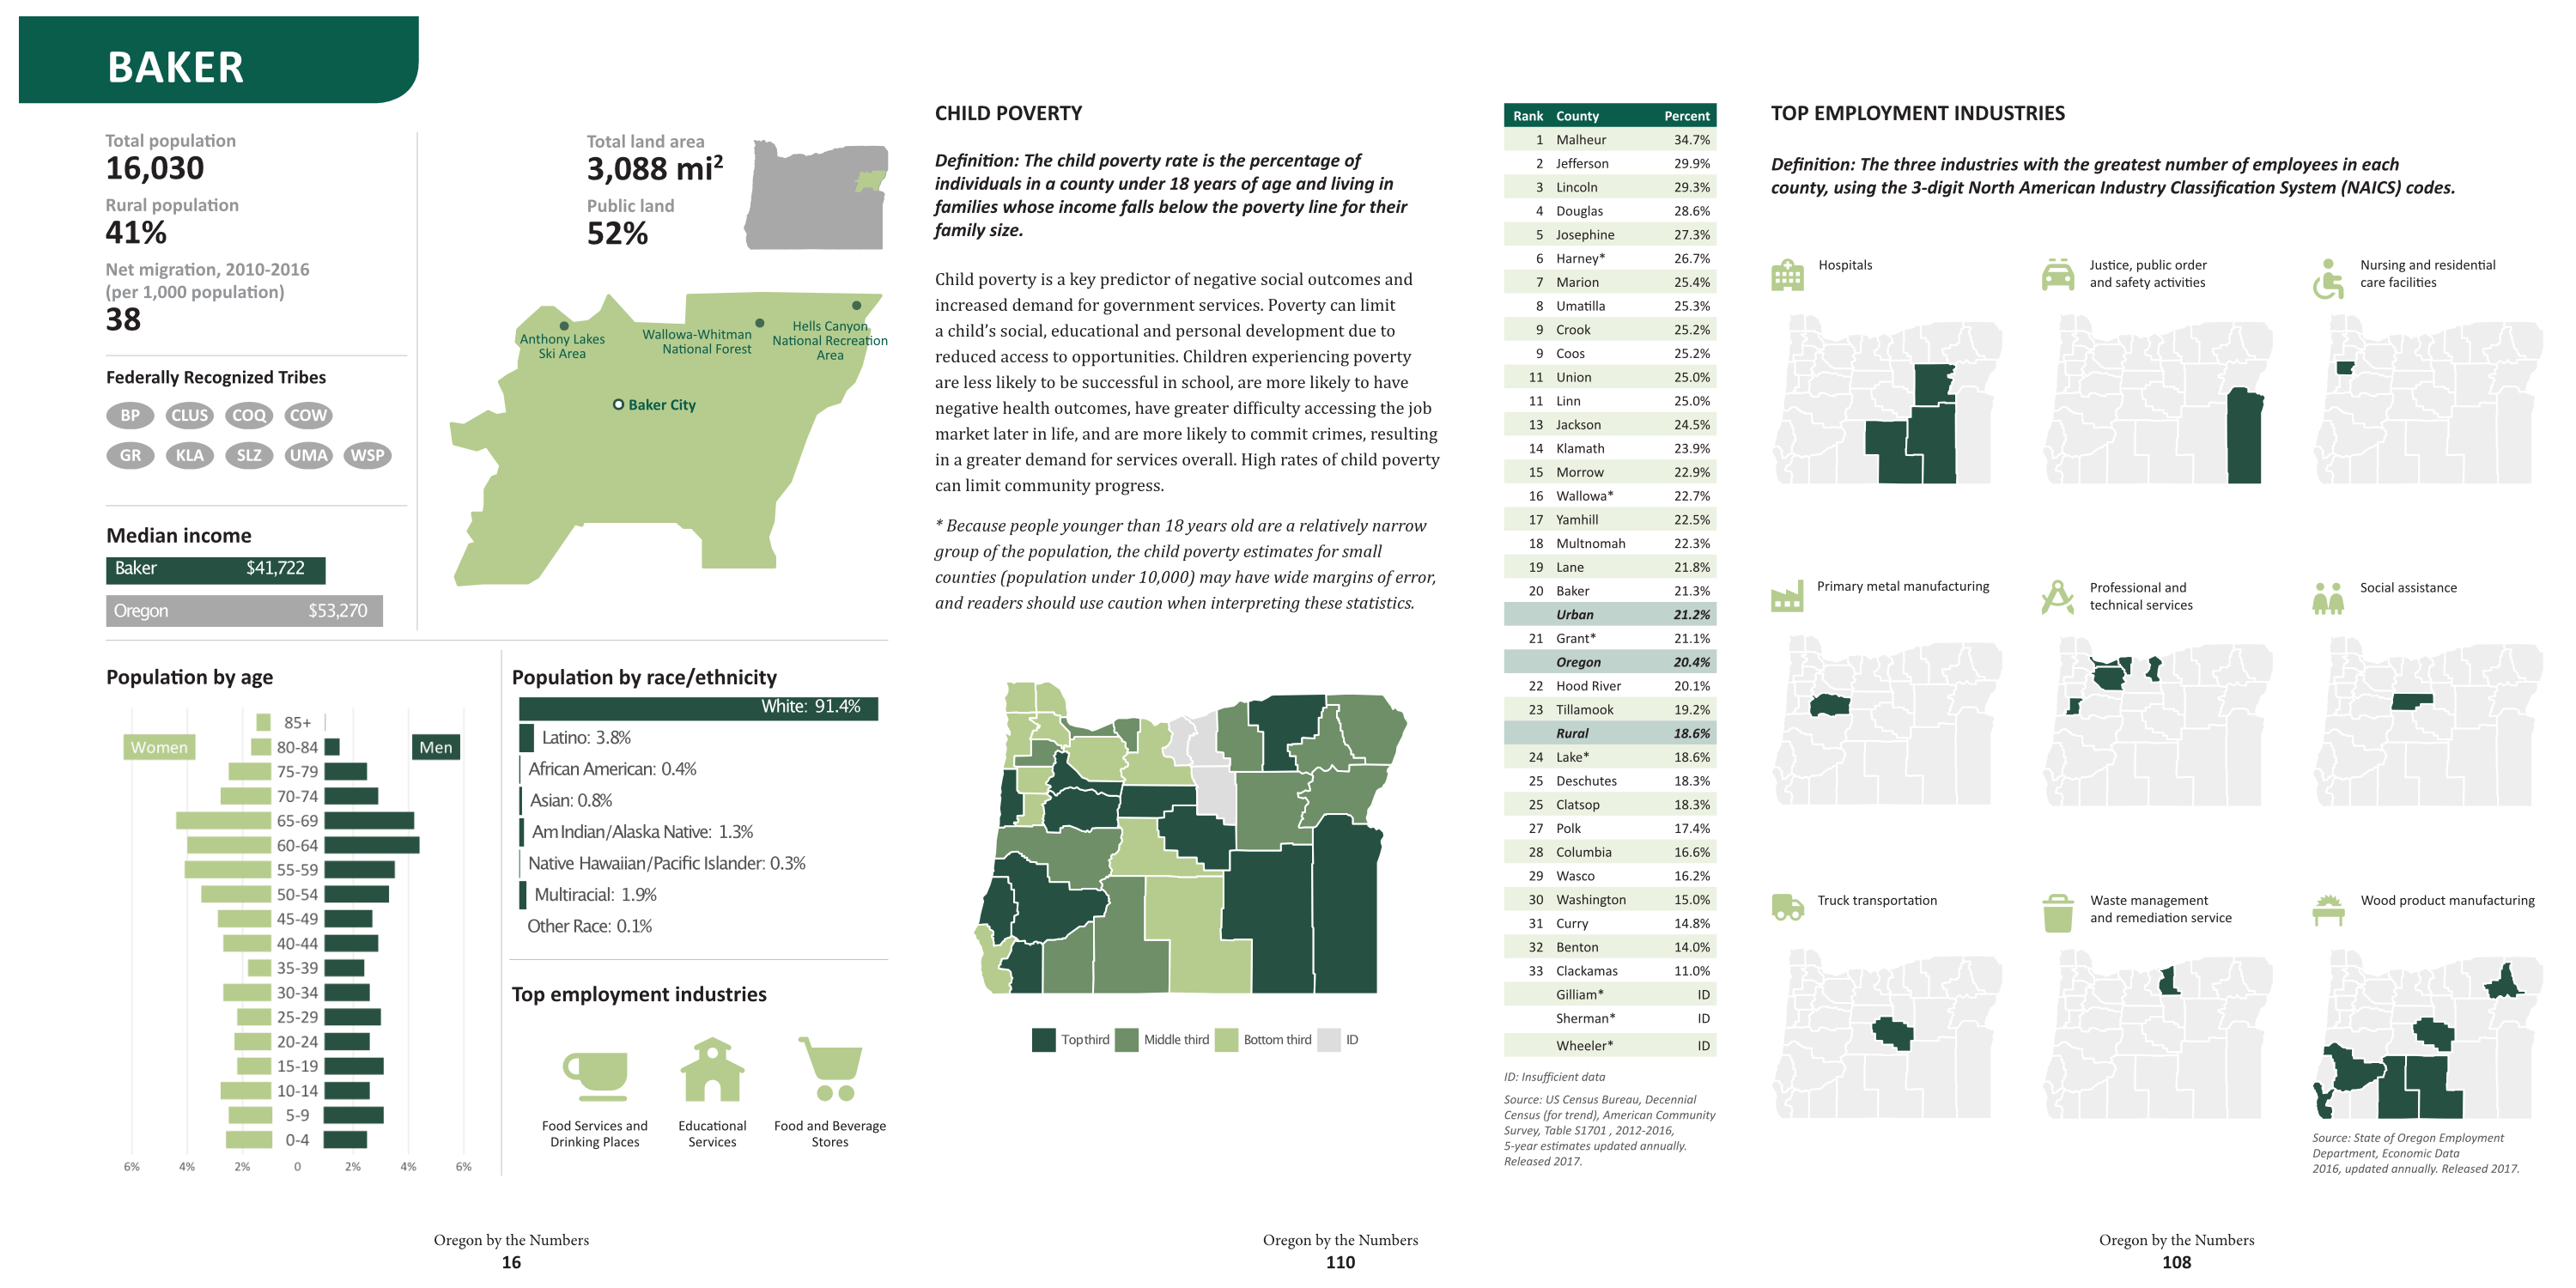 Sample pages from Oregon by the Numbers